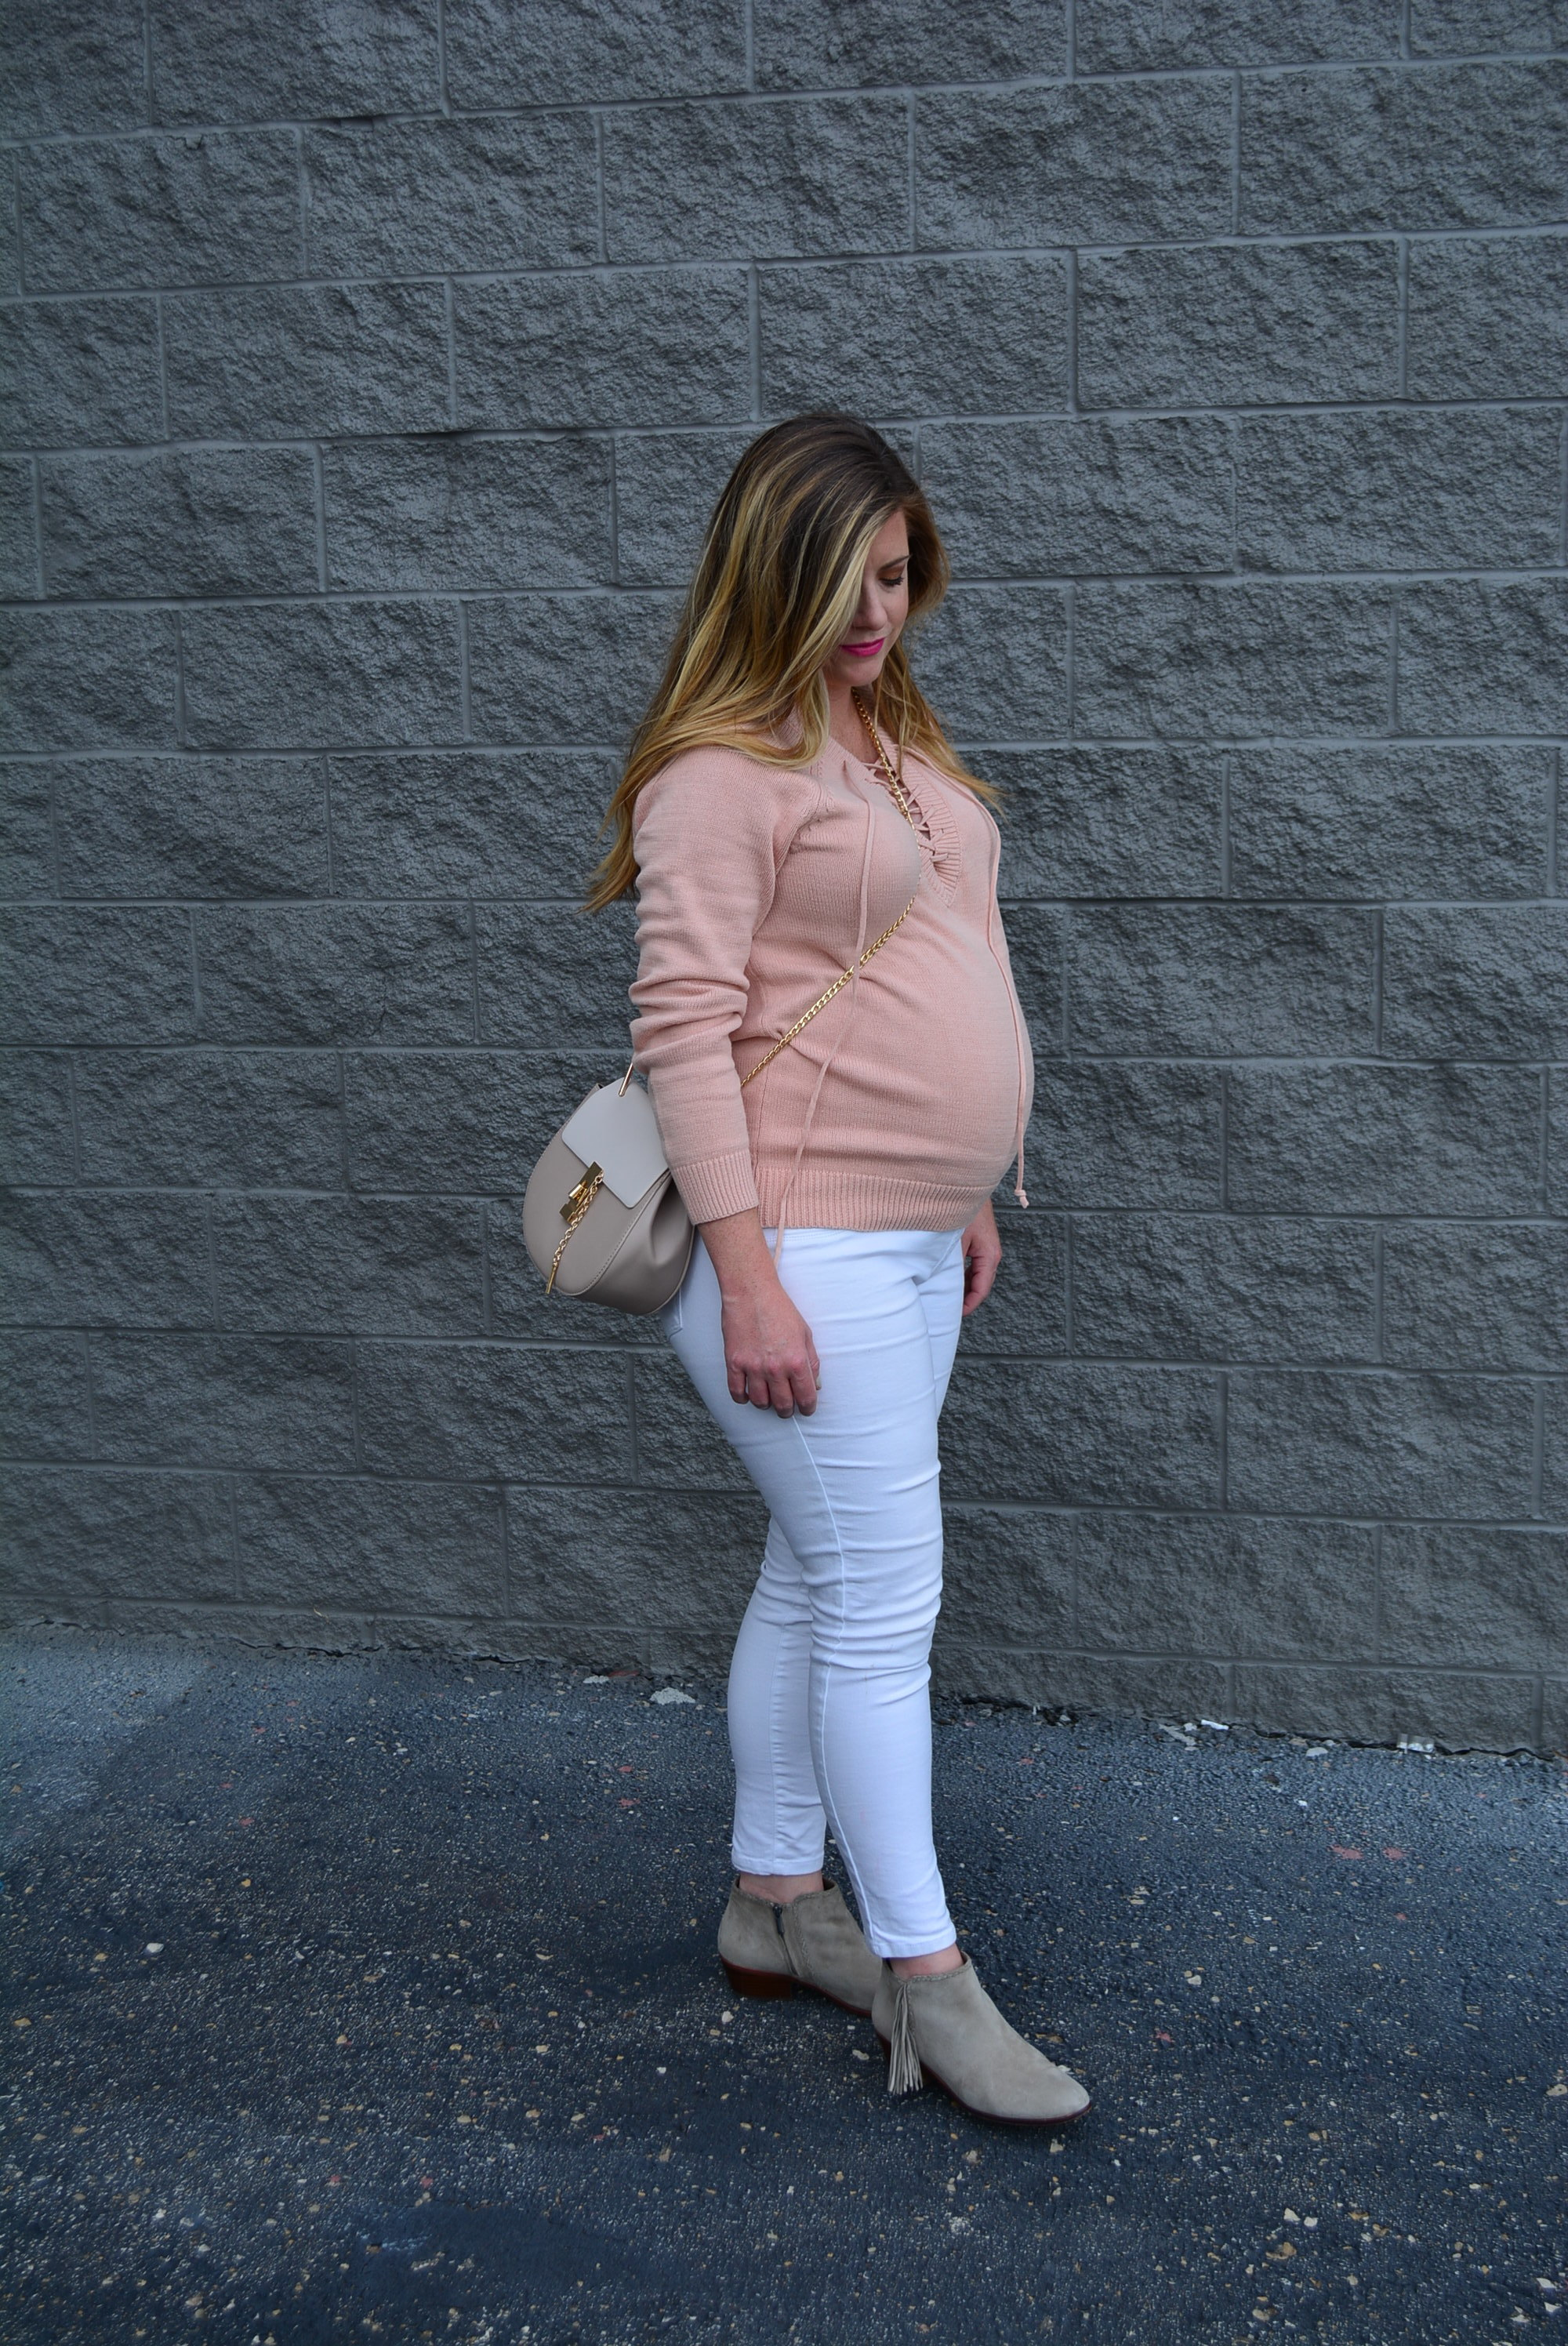 Blush lace up sweater and white jeans for fall